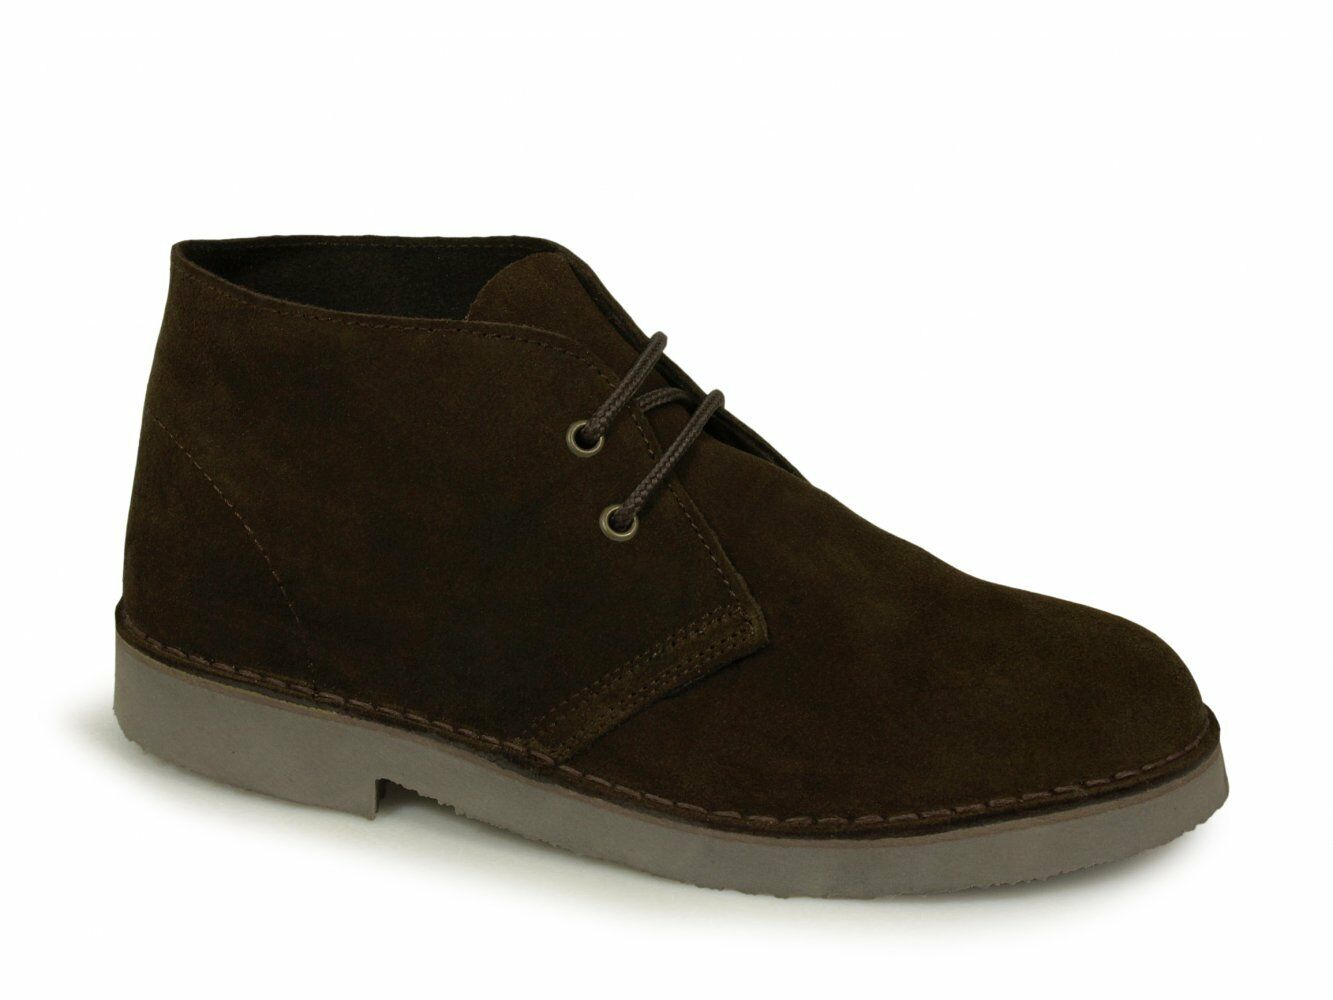 Roamers ORIGINAL Unisex Mens Womens Soft Suede Leather Desert Boots Dark Brown